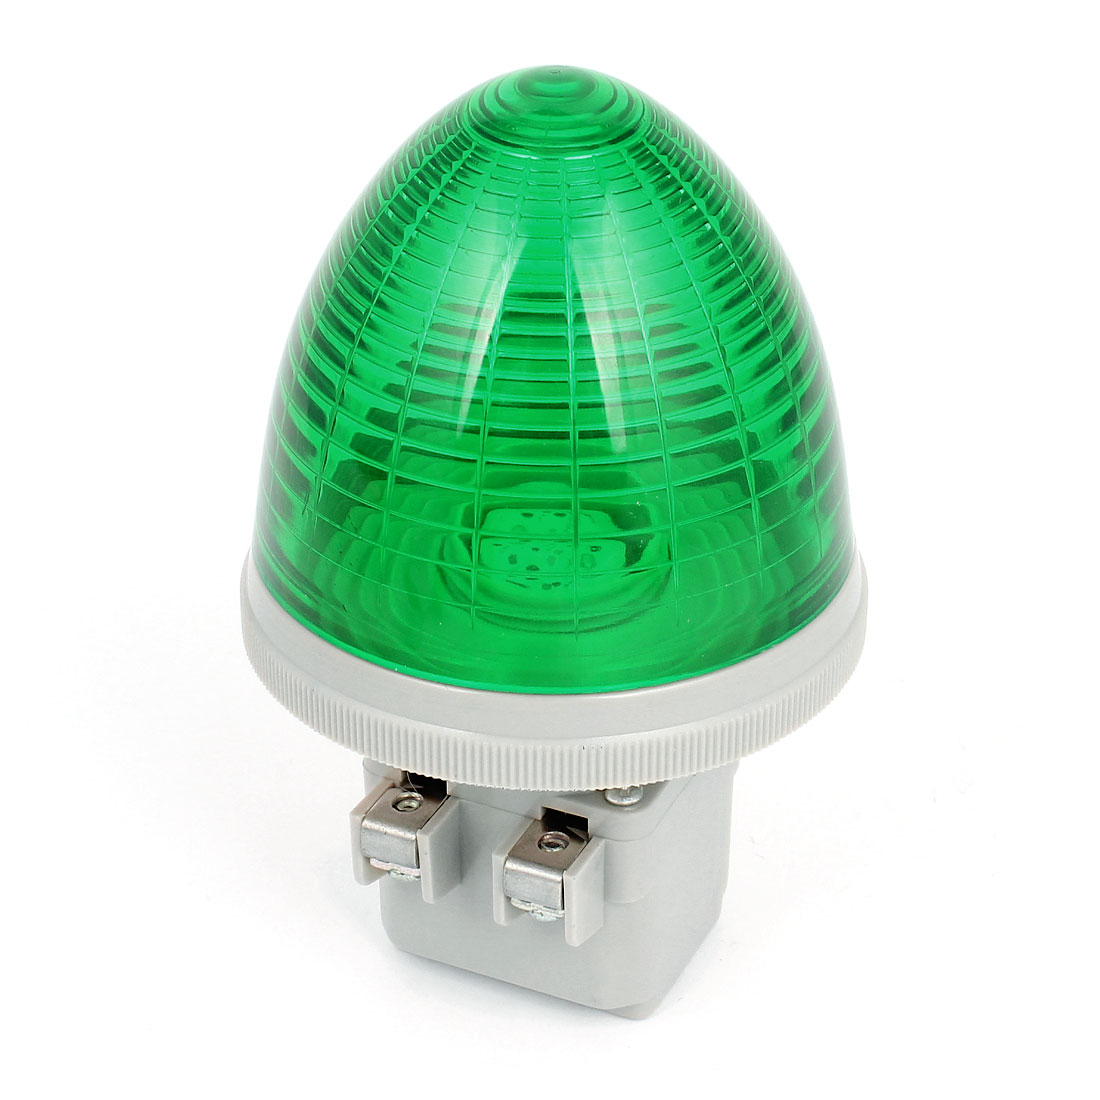 DC 24V 2 Screw Terminal Green LED Industrial Signal Light Indicator Lamp